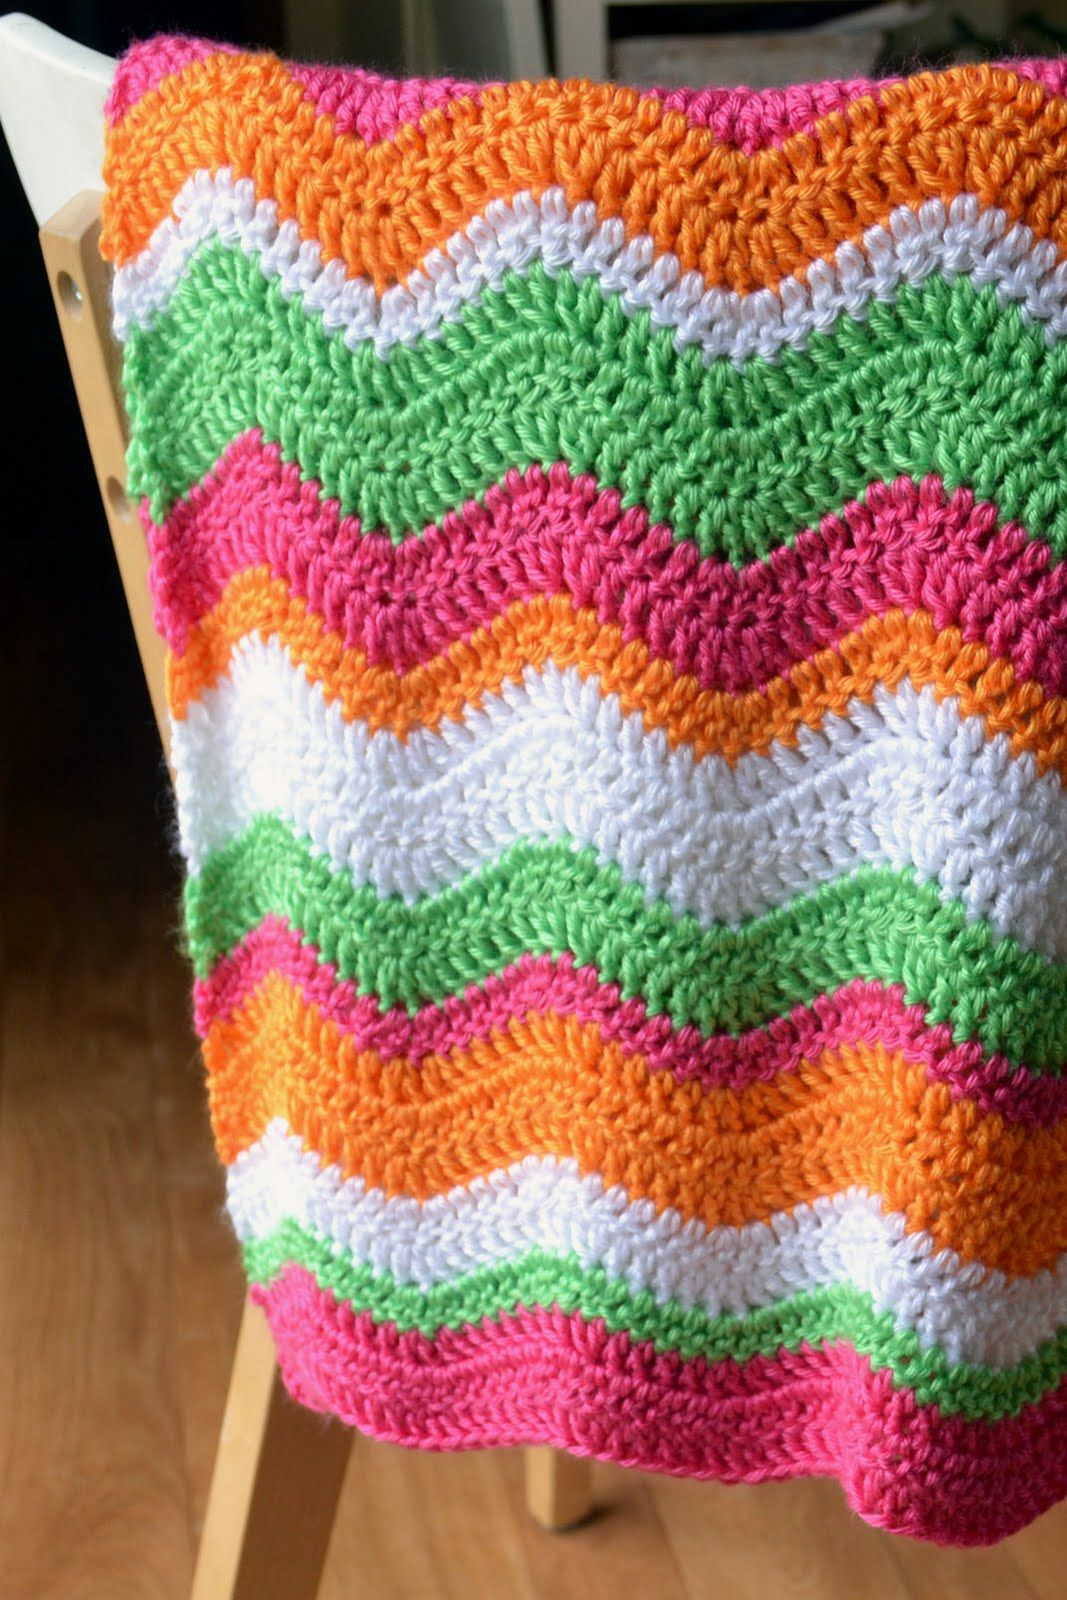 Crochet in Color: Instructions for the Brite Baby Ripple and Attic24 ...